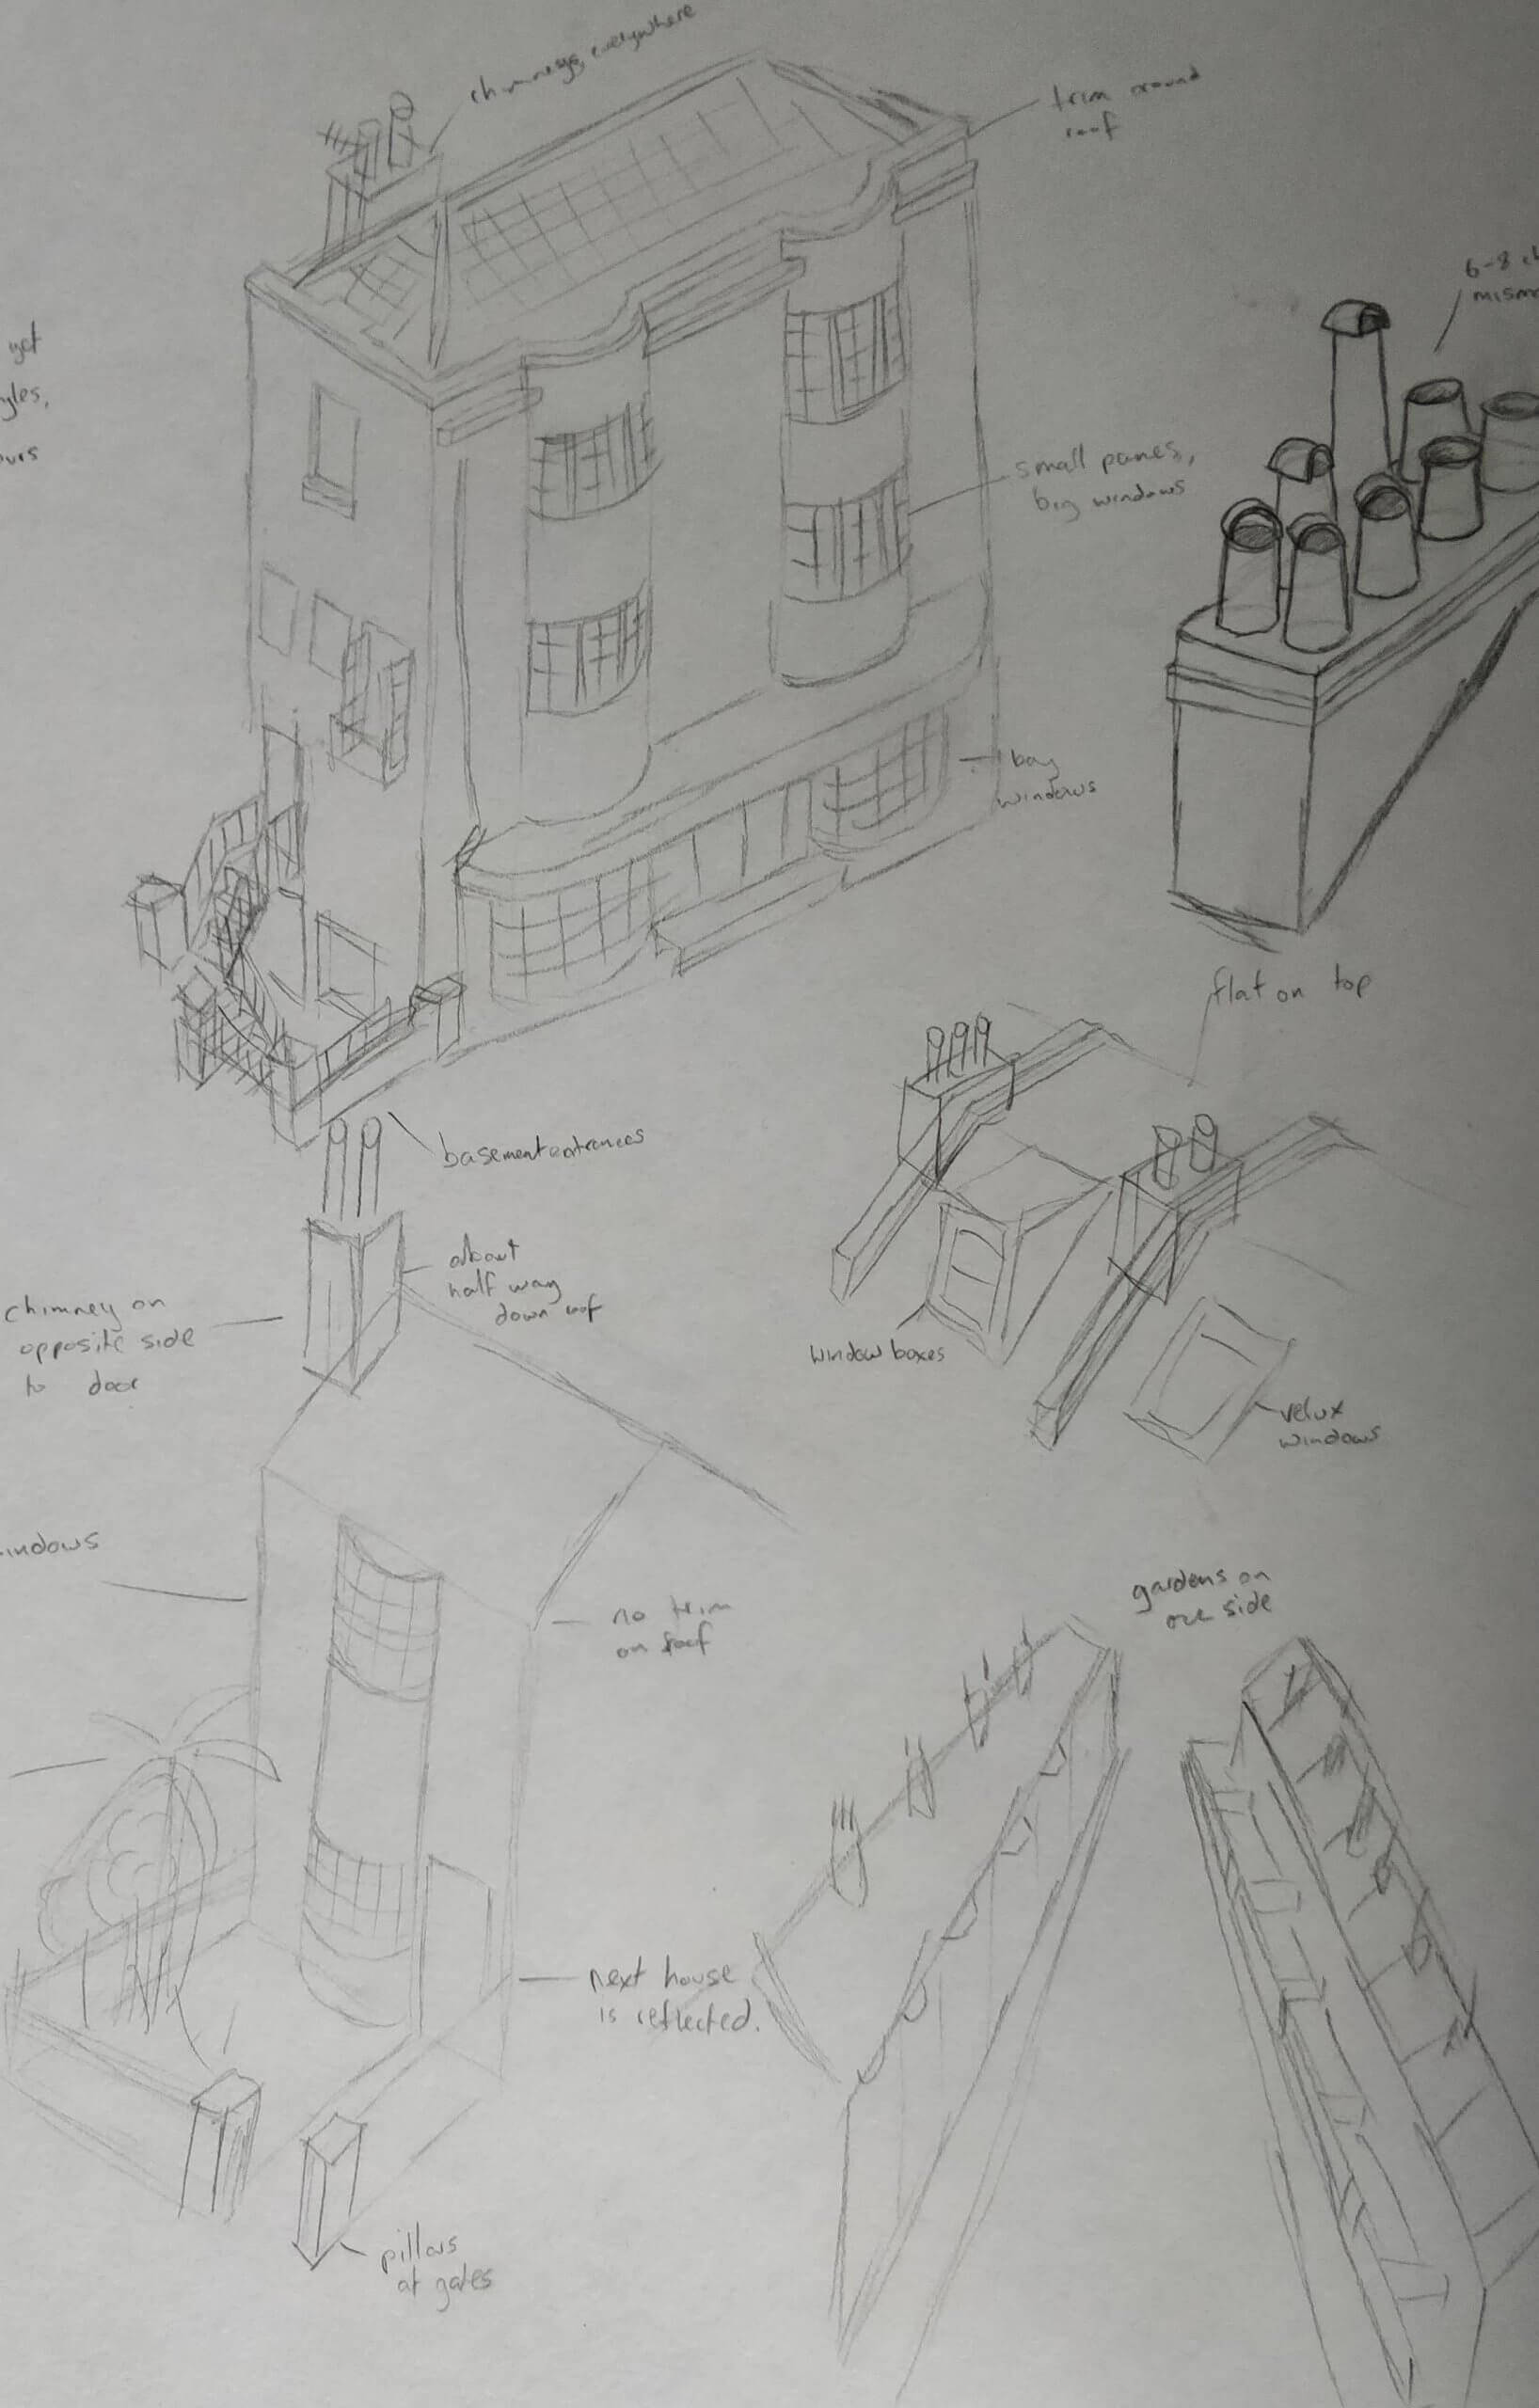 Sketches of buildings and architectural features.